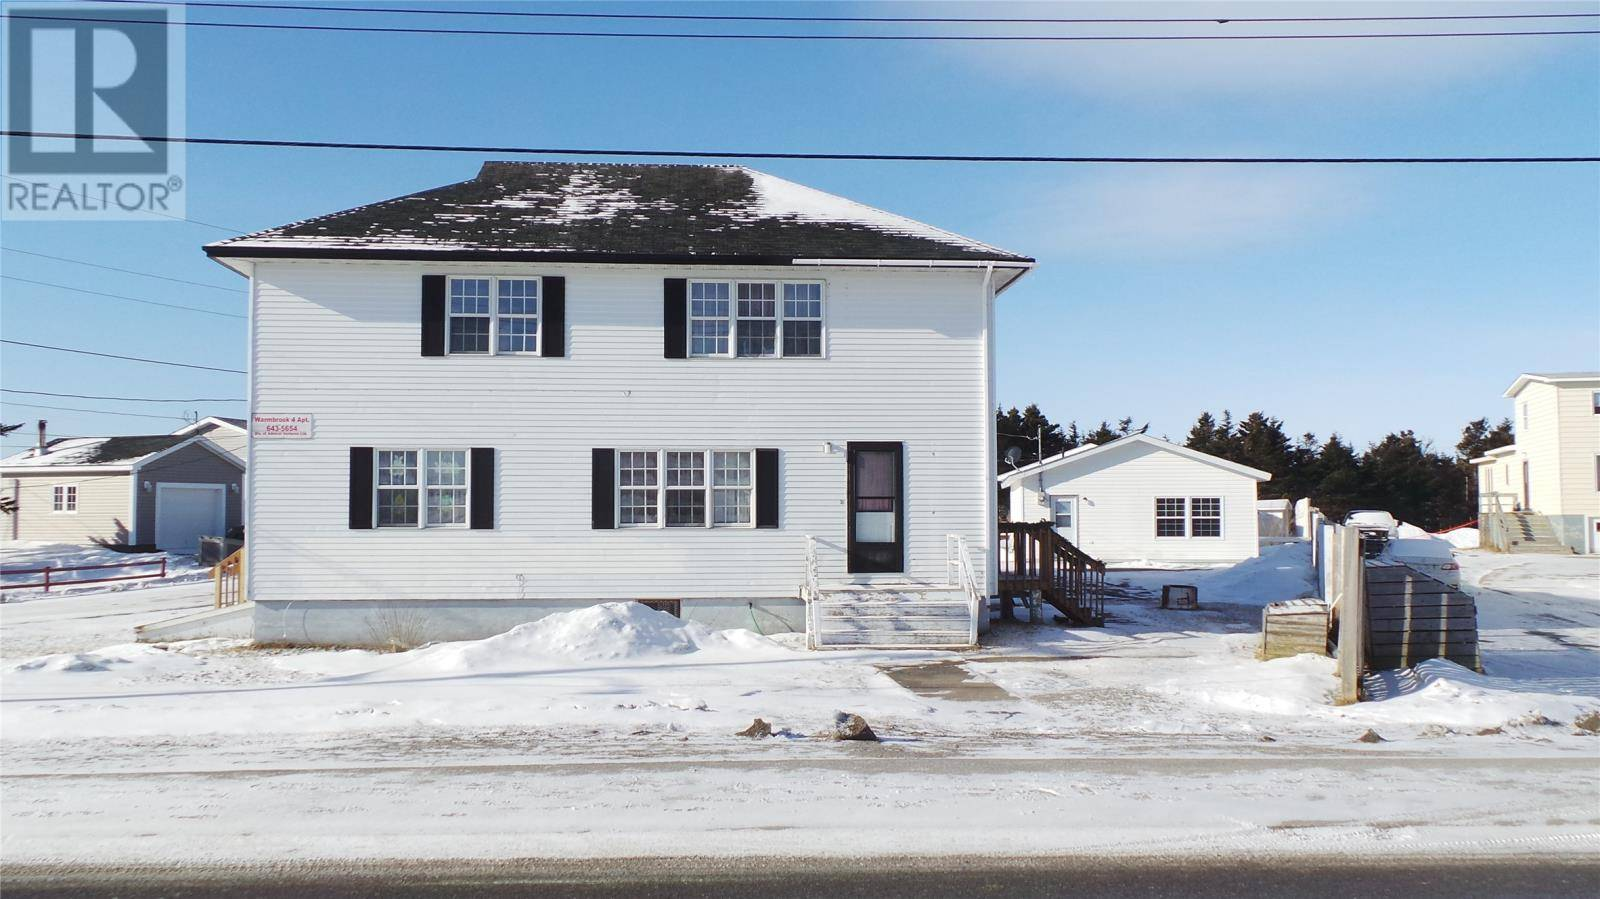 Townhouse for sale at 49 Main St Stephenville Crossing Newfoundland - MLS: 1192891